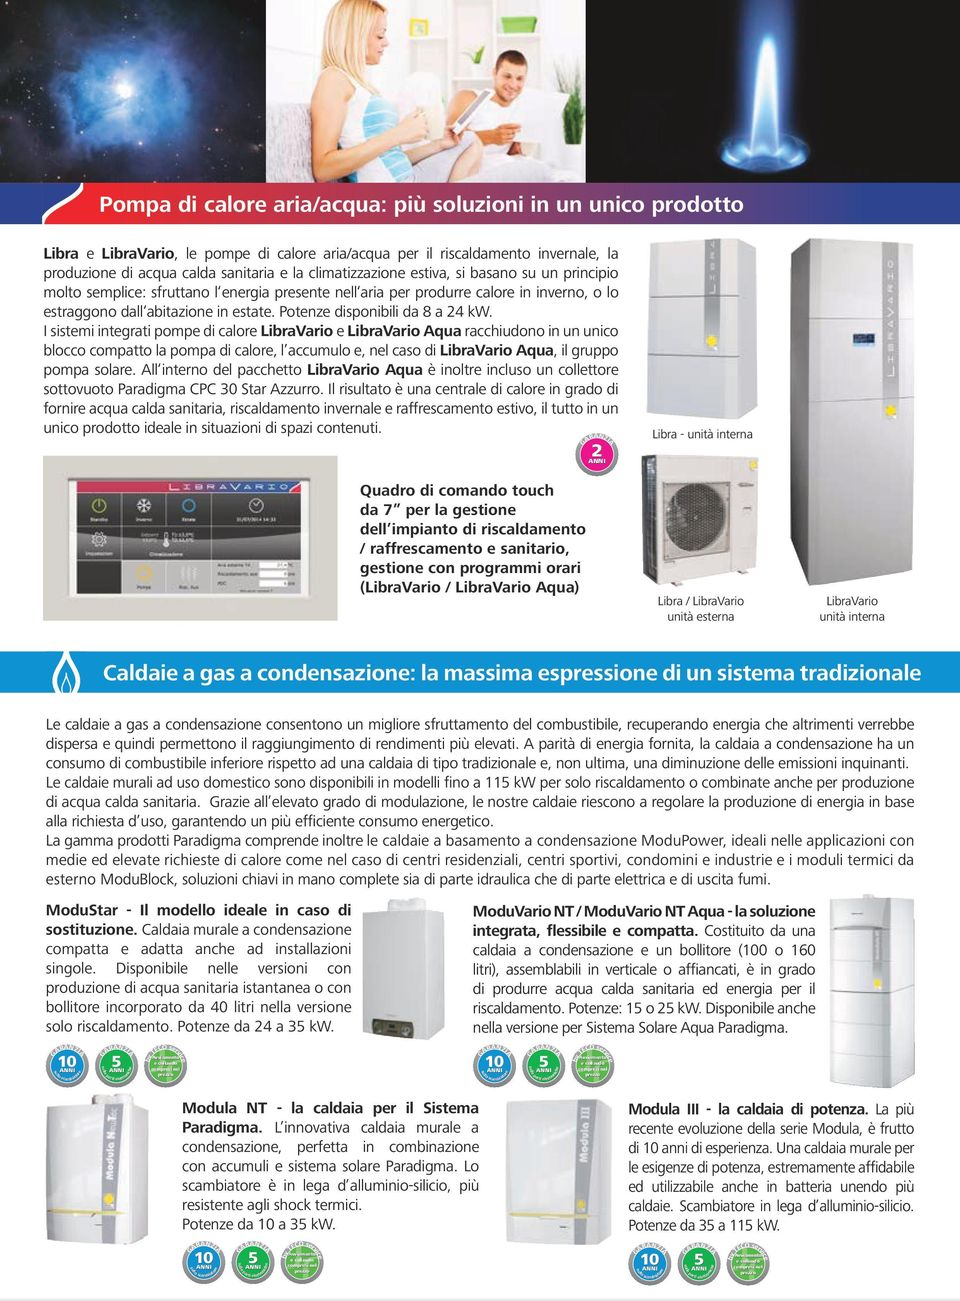 Potenze disponibili da 8 a 24 kw.